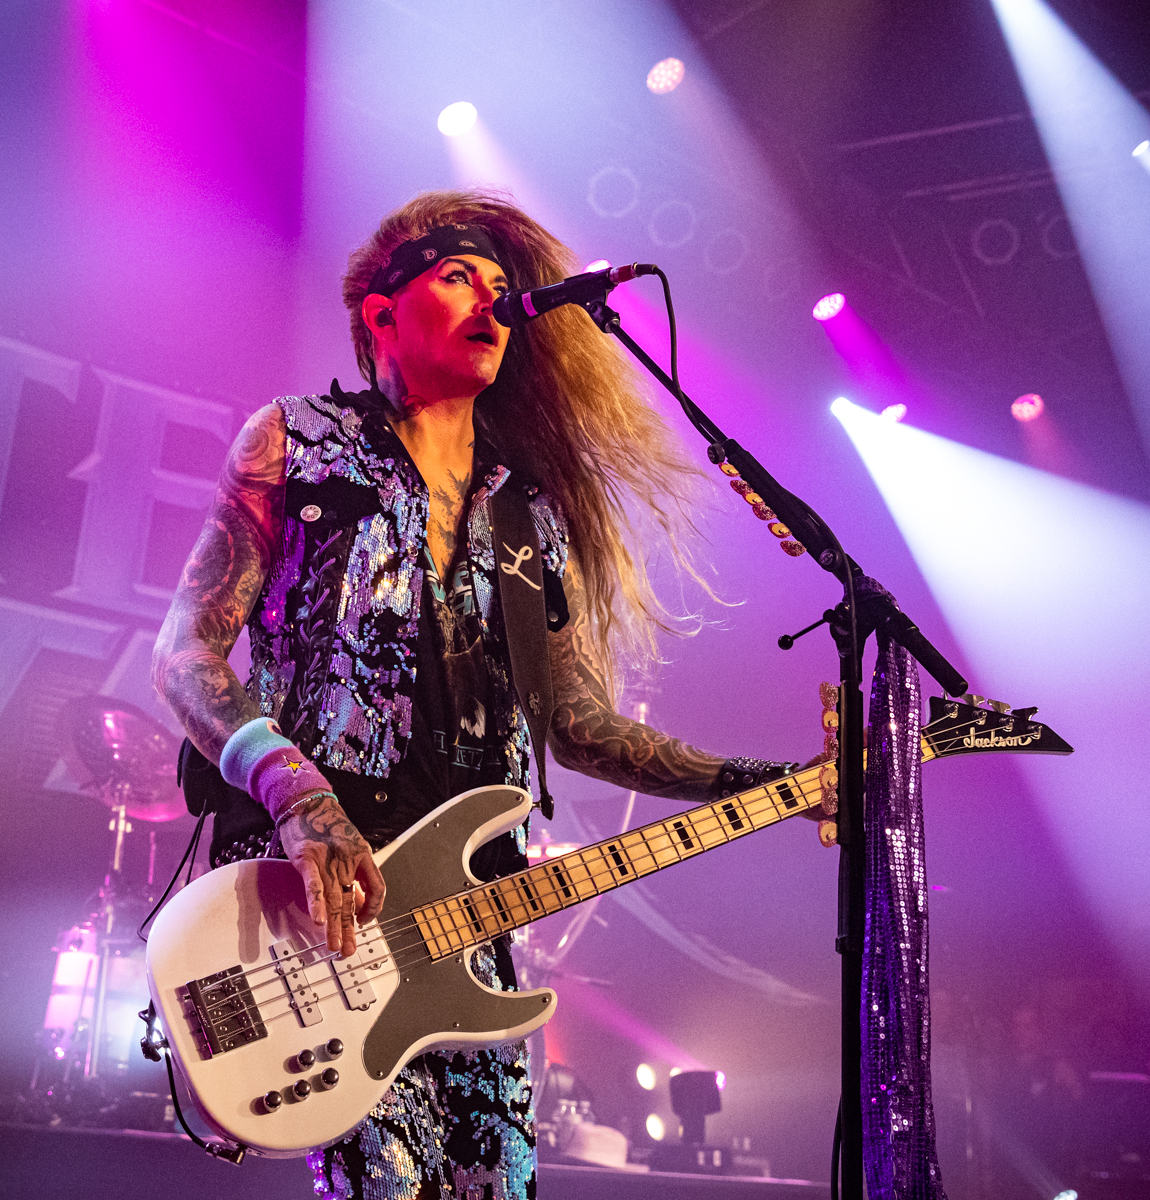 SteelPanther-HouseofBlues-Chicago_IL-20191208-IanBardecki-40